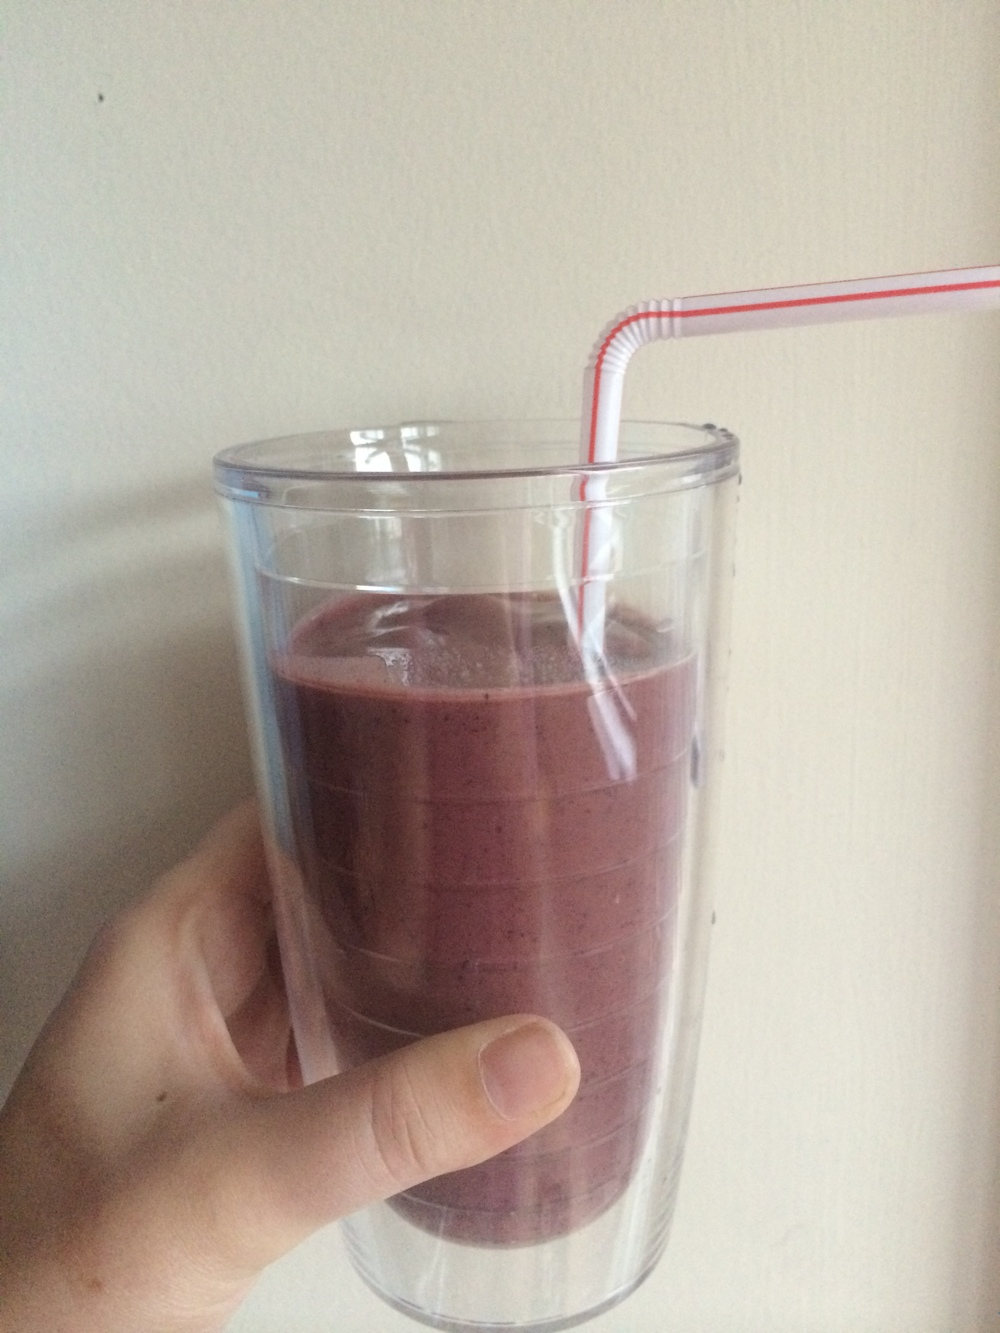 This morning's smoothie